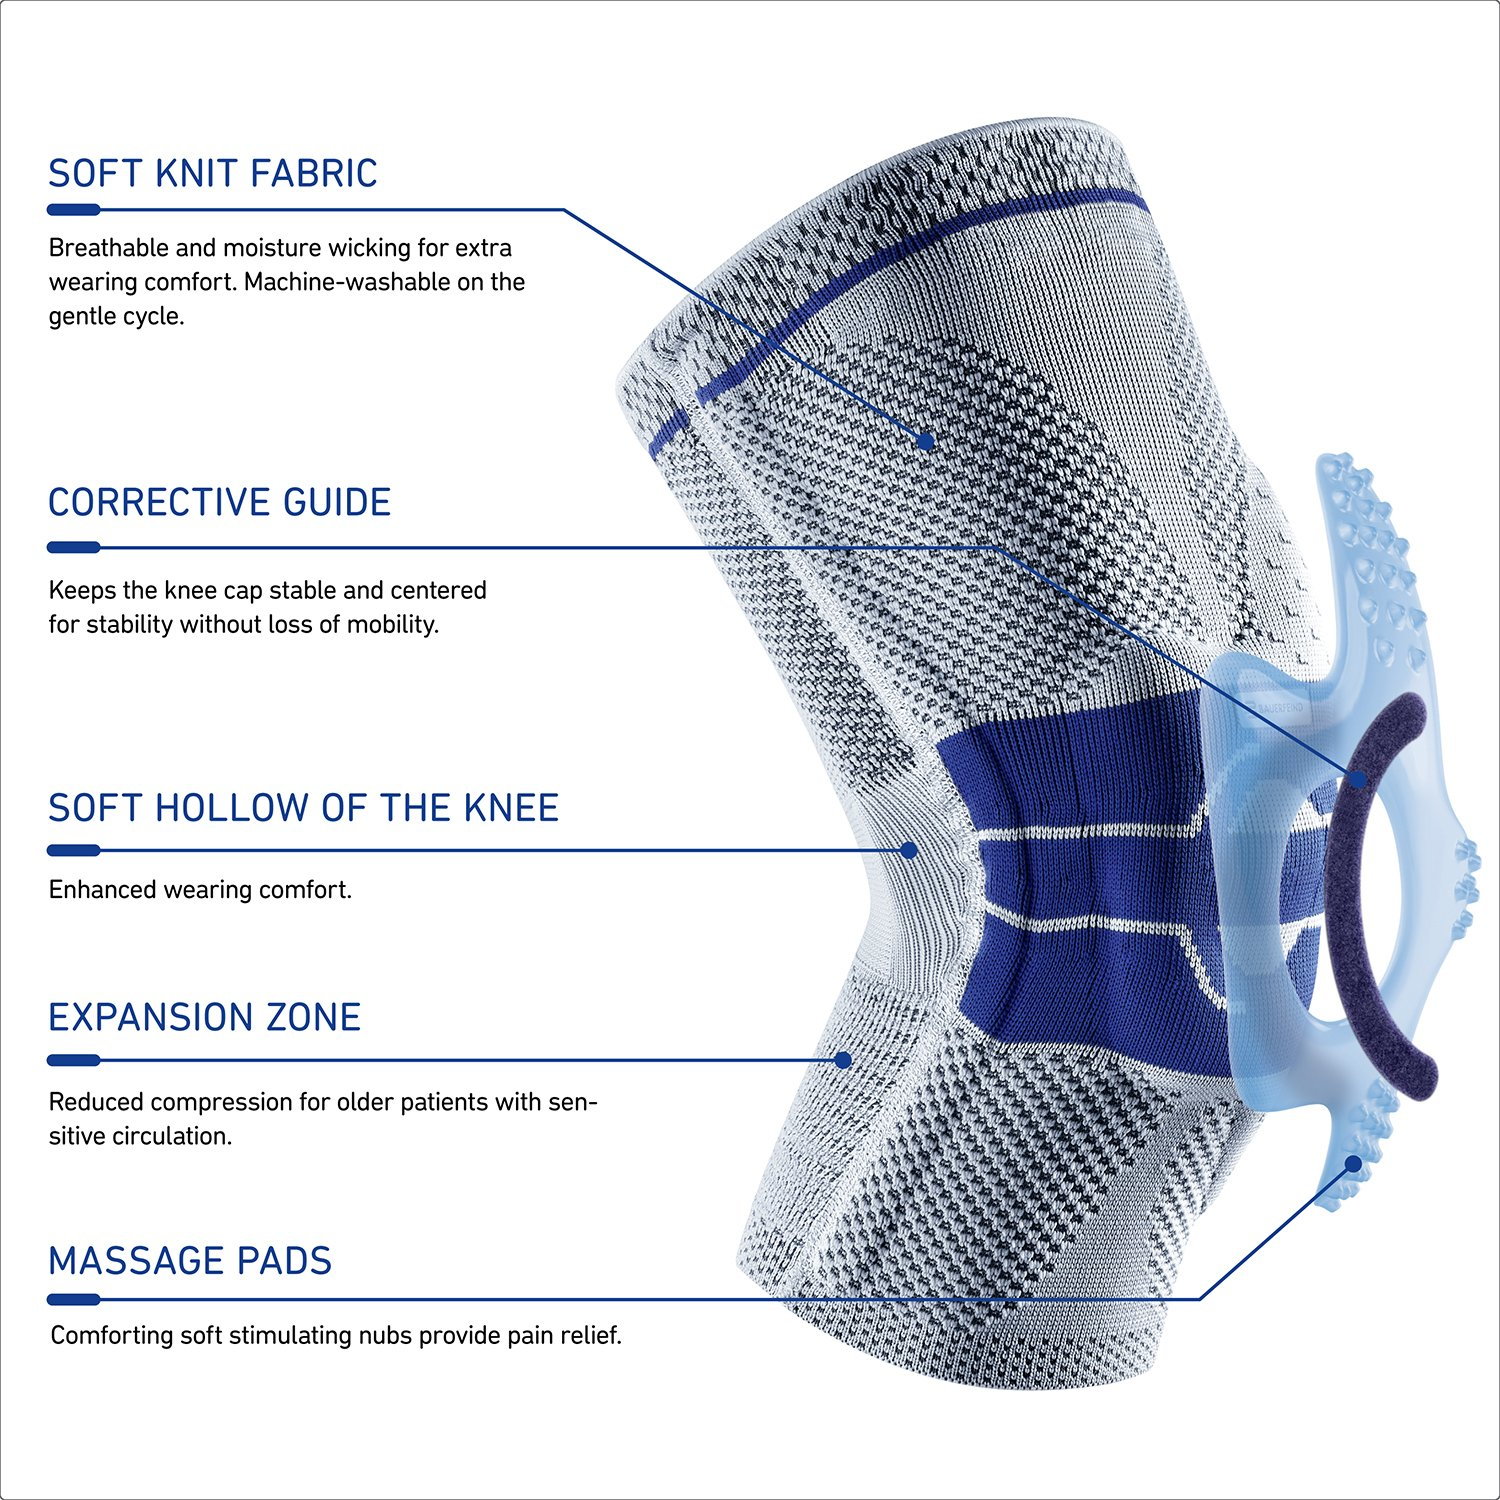 69506e9234 Amazon.com: Bauerfeind - GenuTrain A3 - Knee Support - Breathable Knit Knee  Brace Helps Relieve Chronic Knee Pain and Irritation, Designed for Active  People ...